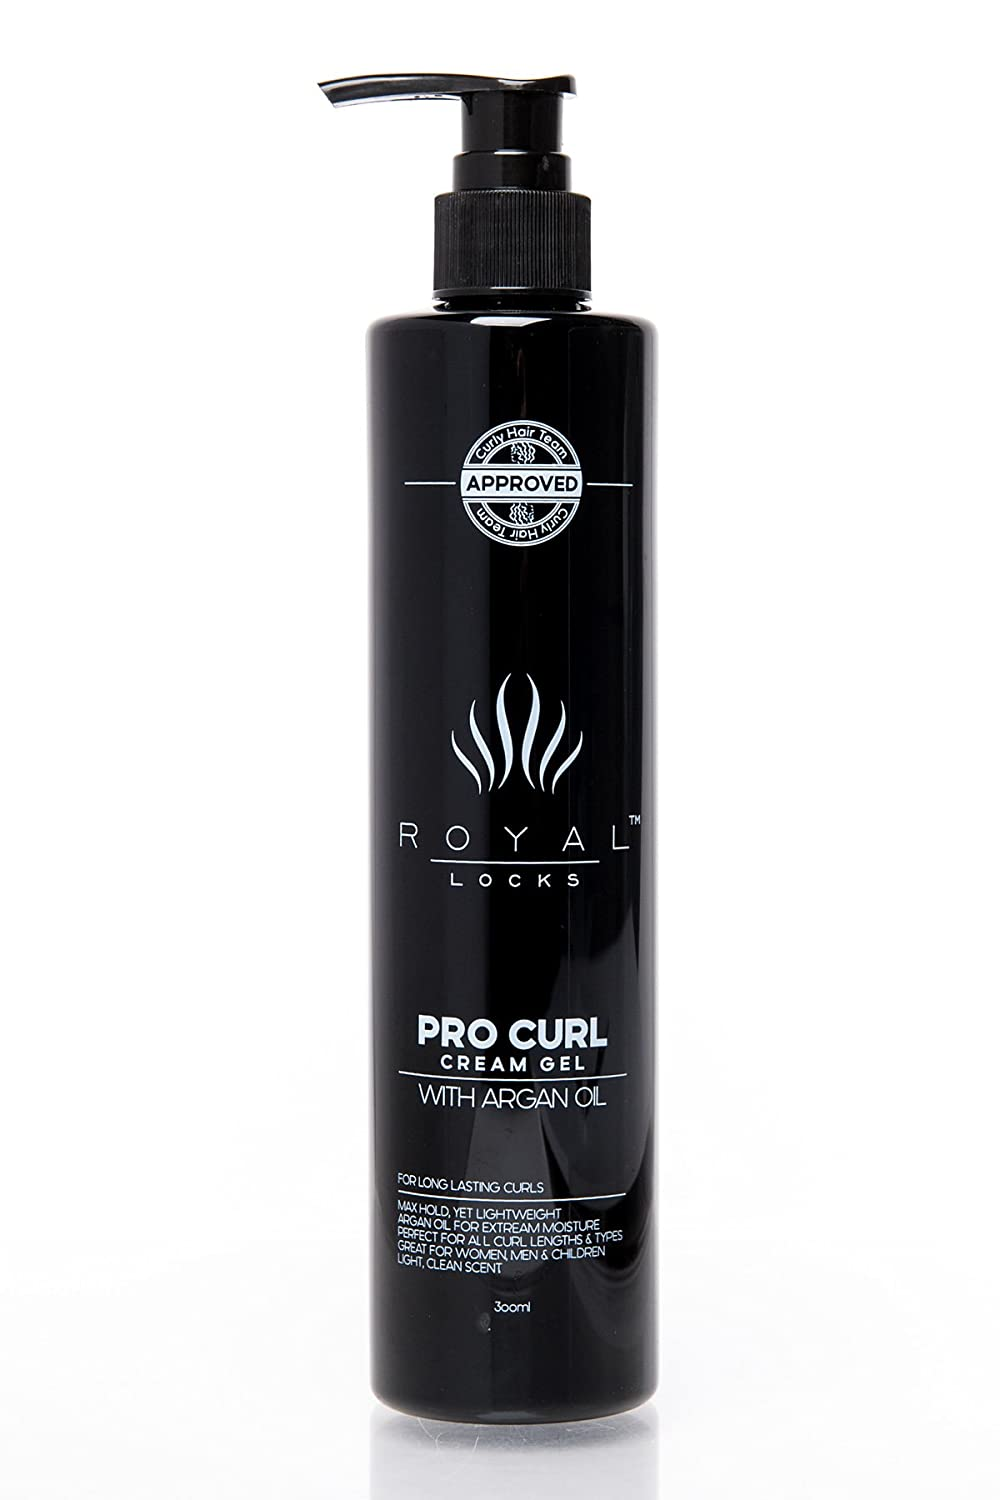 Curl Cream Gel by Royal Locks. Professional Curly Hair Product Defining Cream Moisture Gel Hold and Argan Oil Infused Anti Frizz. Perfect Bounce Soft Frizz Free Waves Natural Curls or Perm